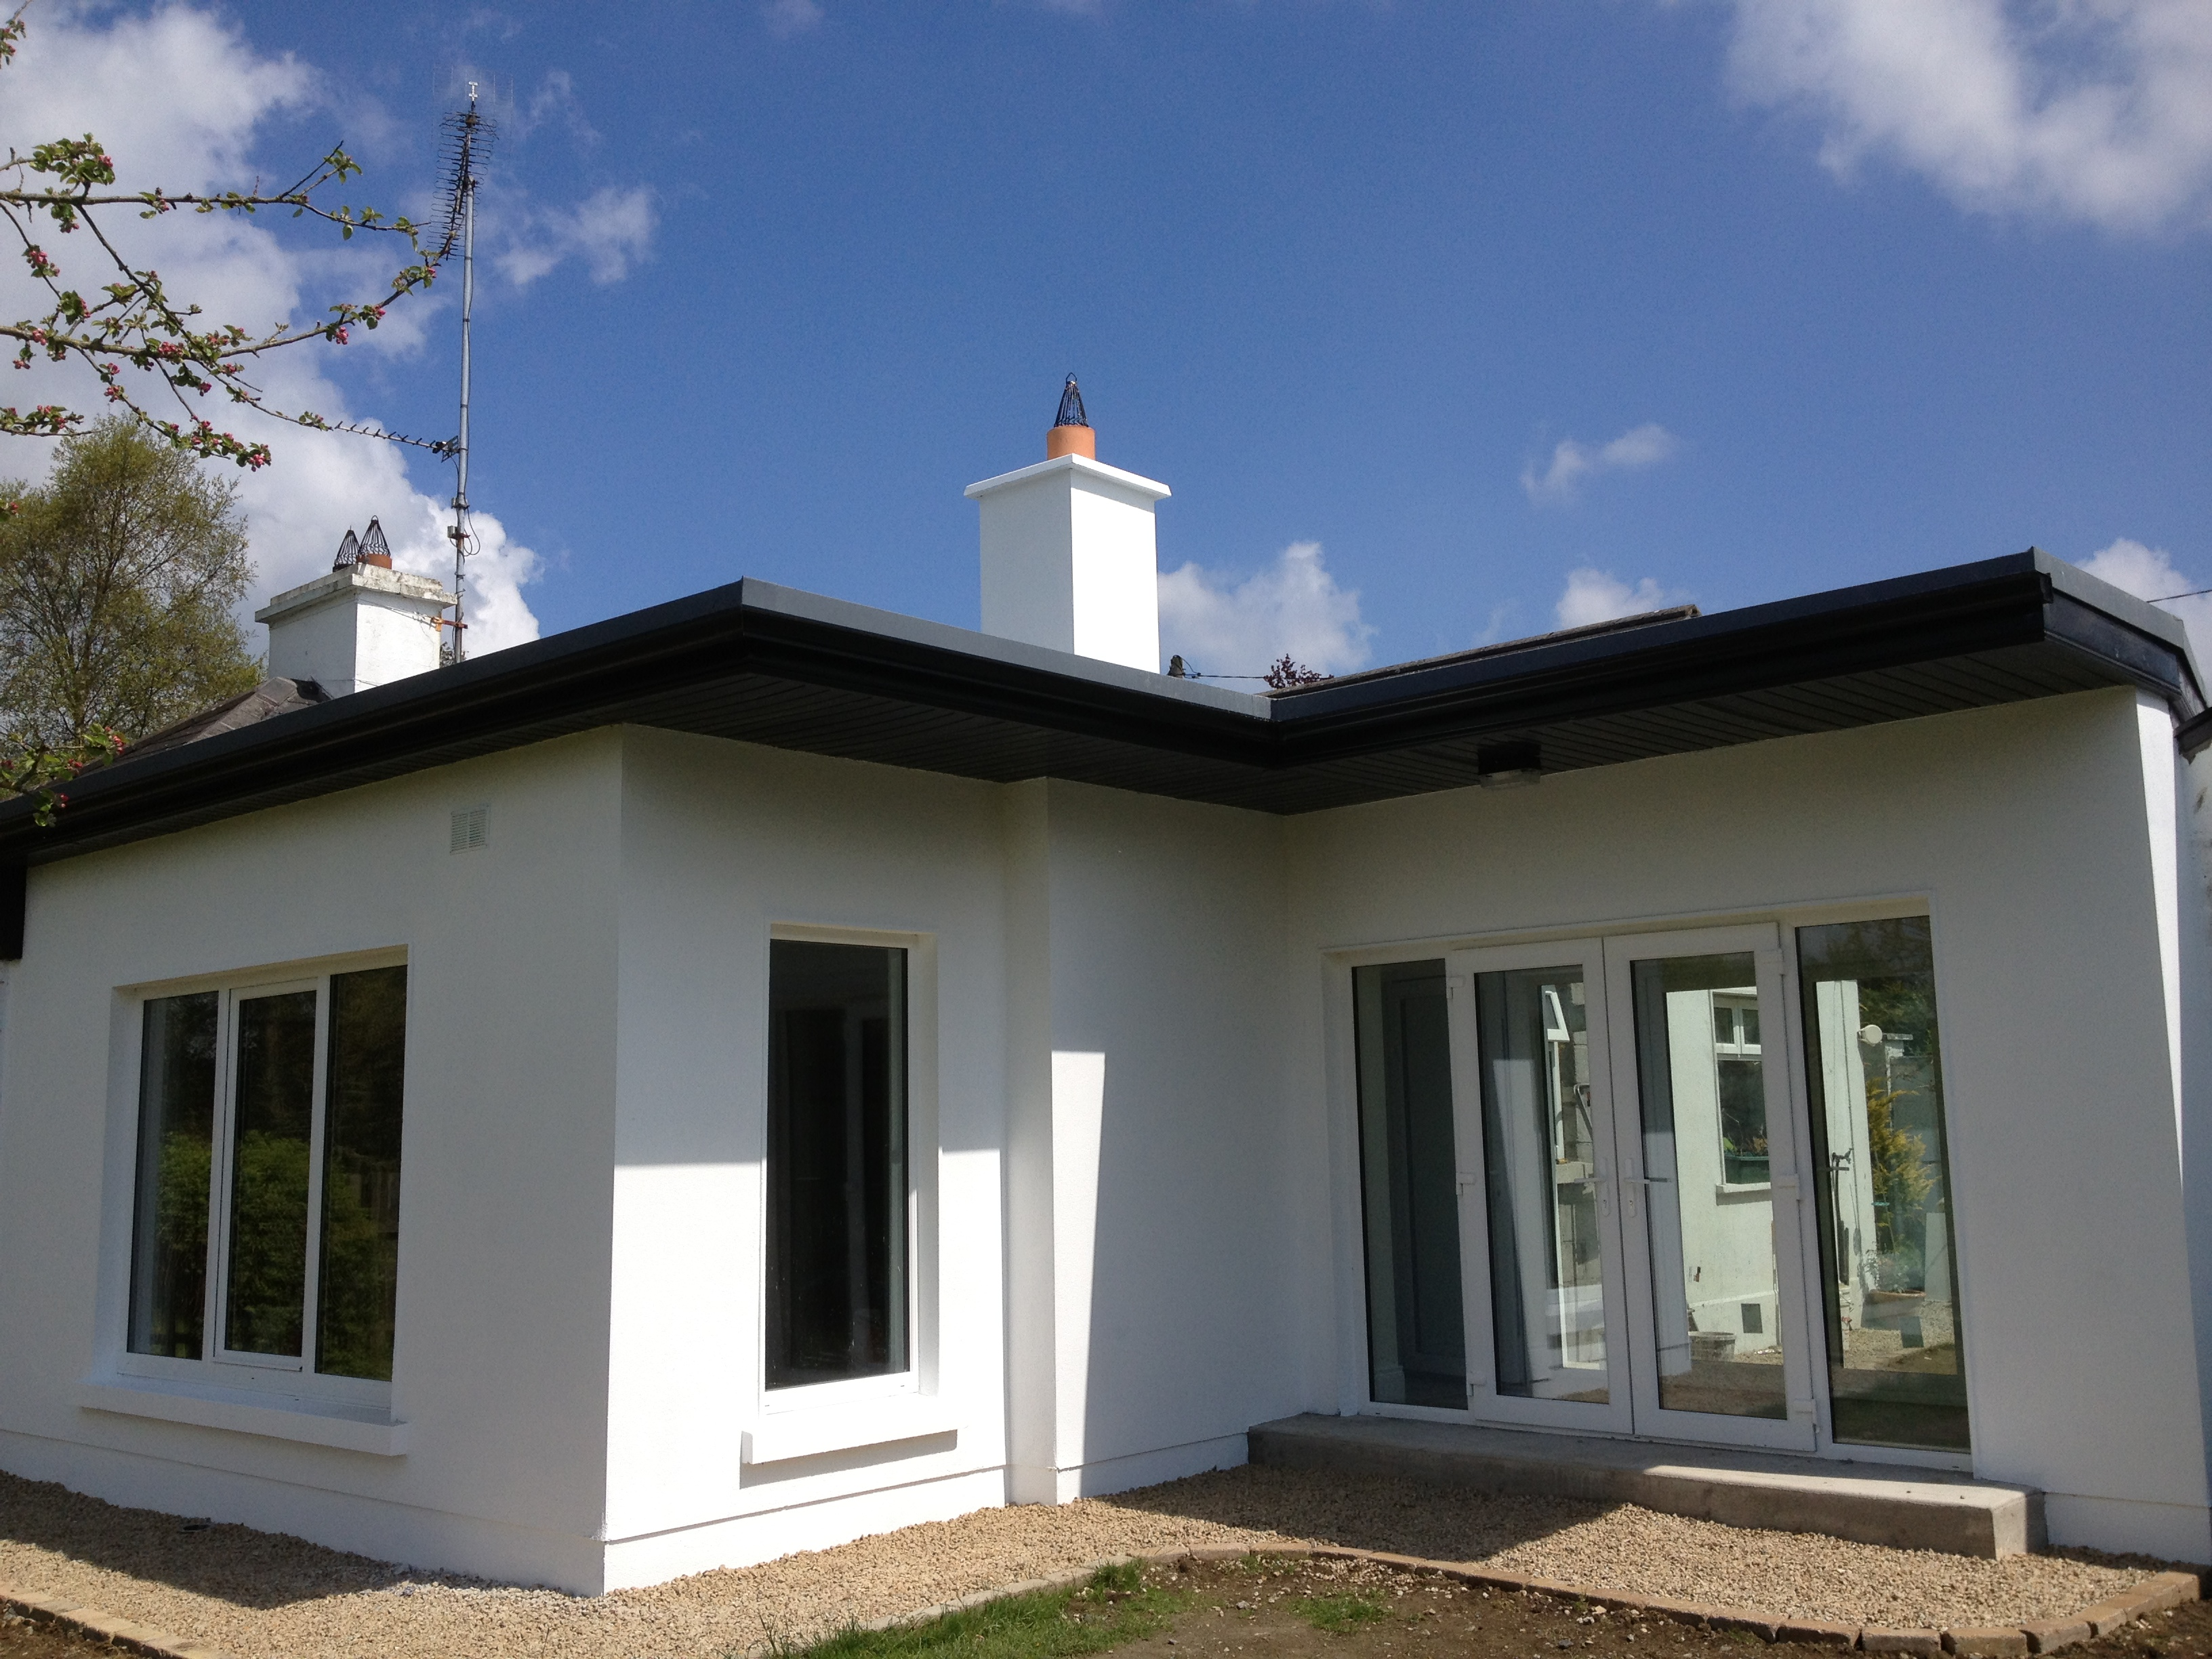 Home extension by PP Construction